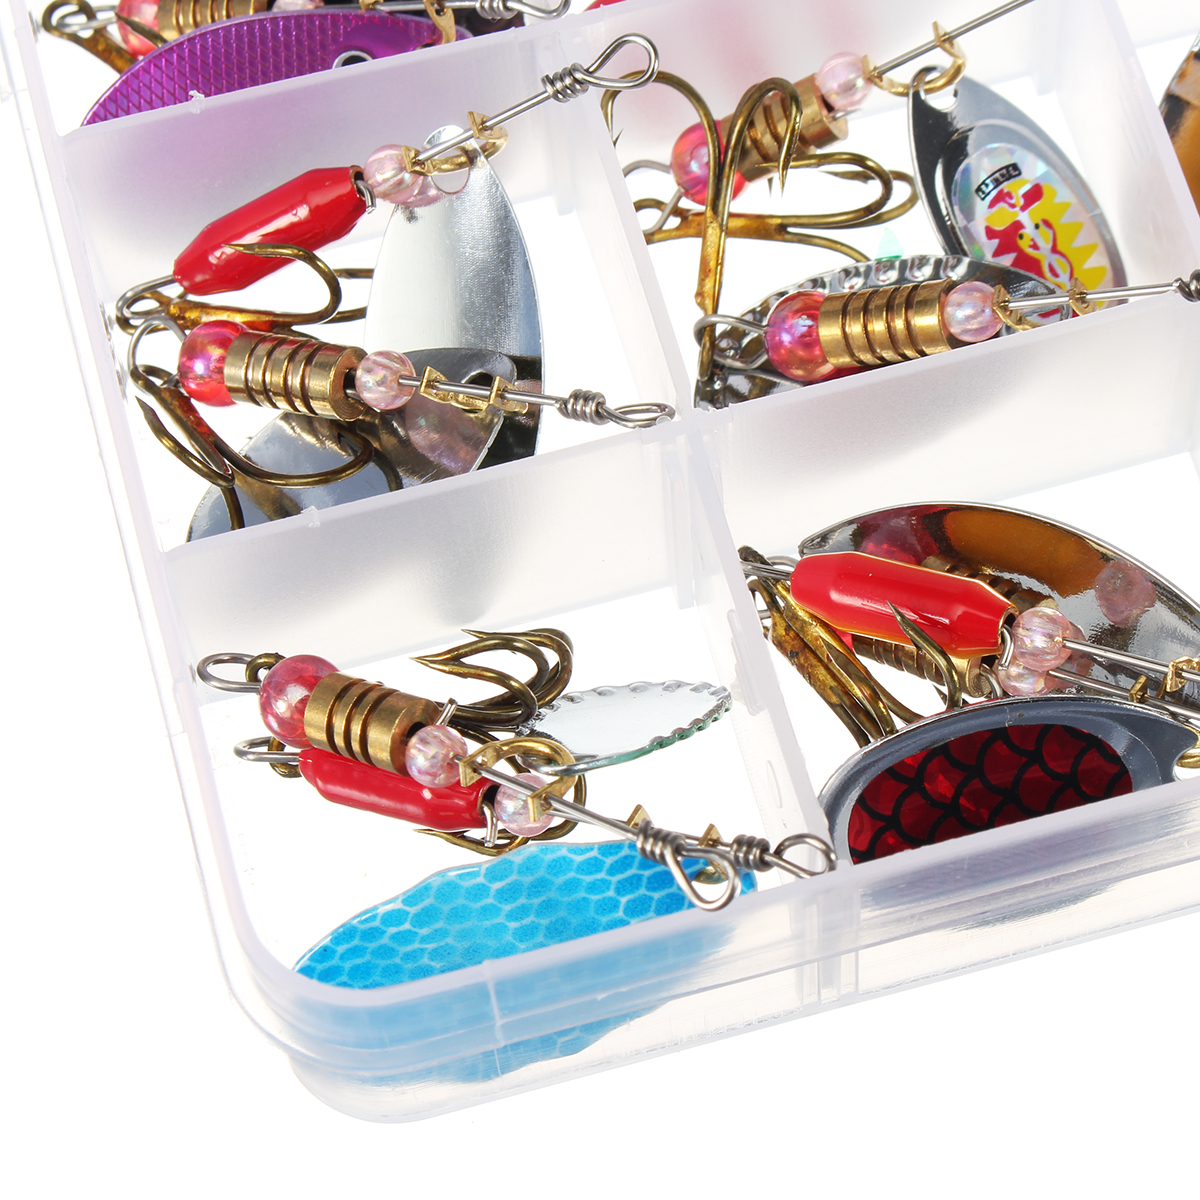 ZANLURE 30pcs//lot Colorful Tront Spoon Metal Fishing Lure Spinner Bait Bass Tack